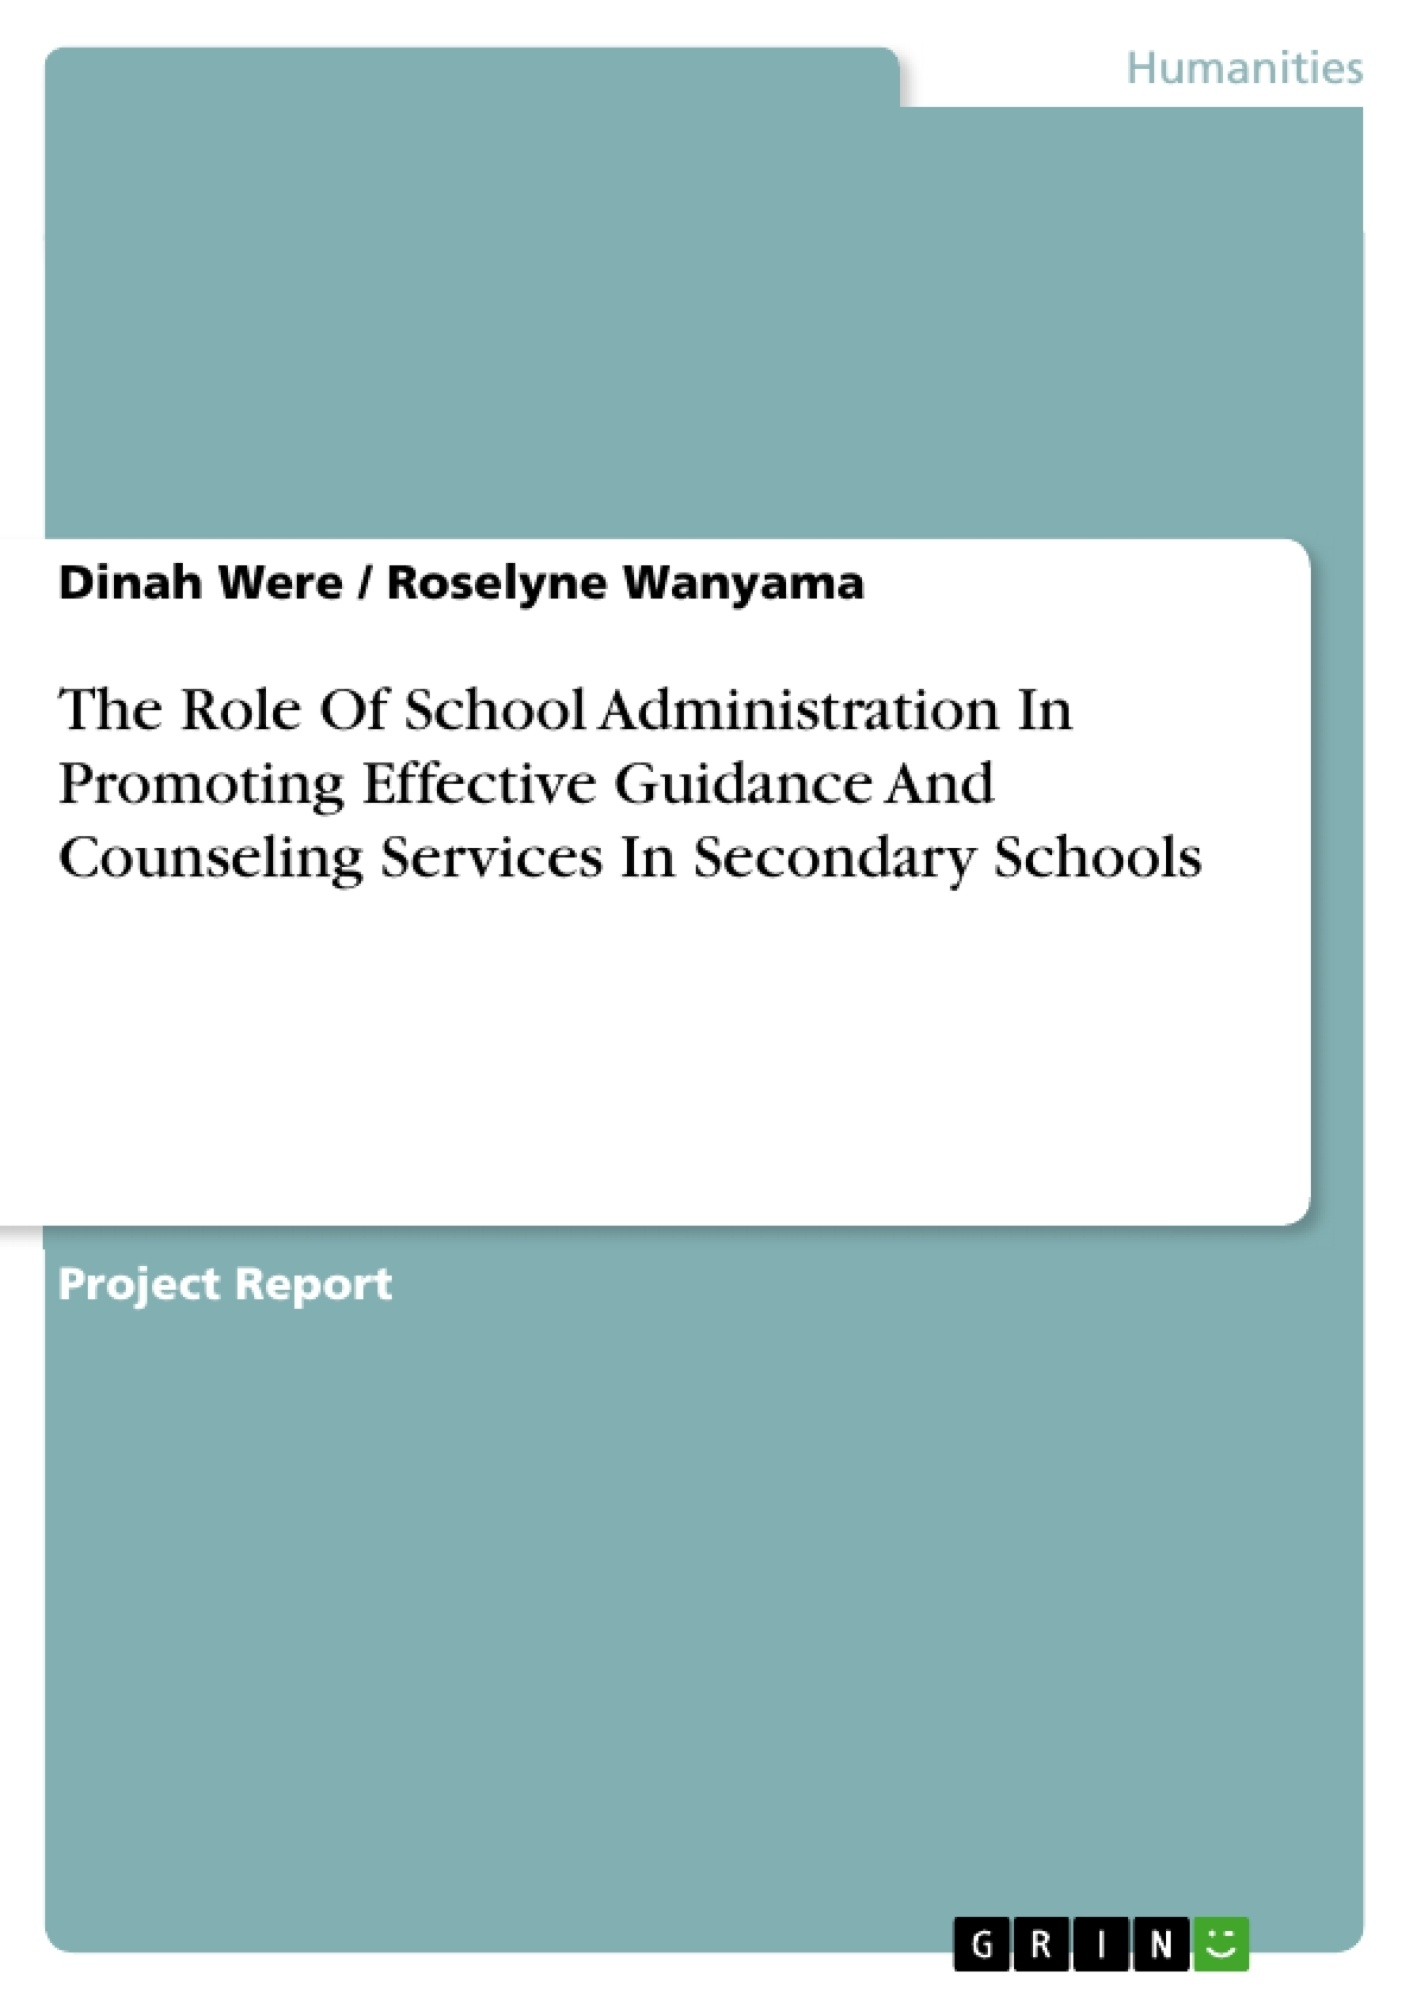 Title: The Role Of School Administration In Promoting Effective Guidance And Counseling Services In Secondary Schools